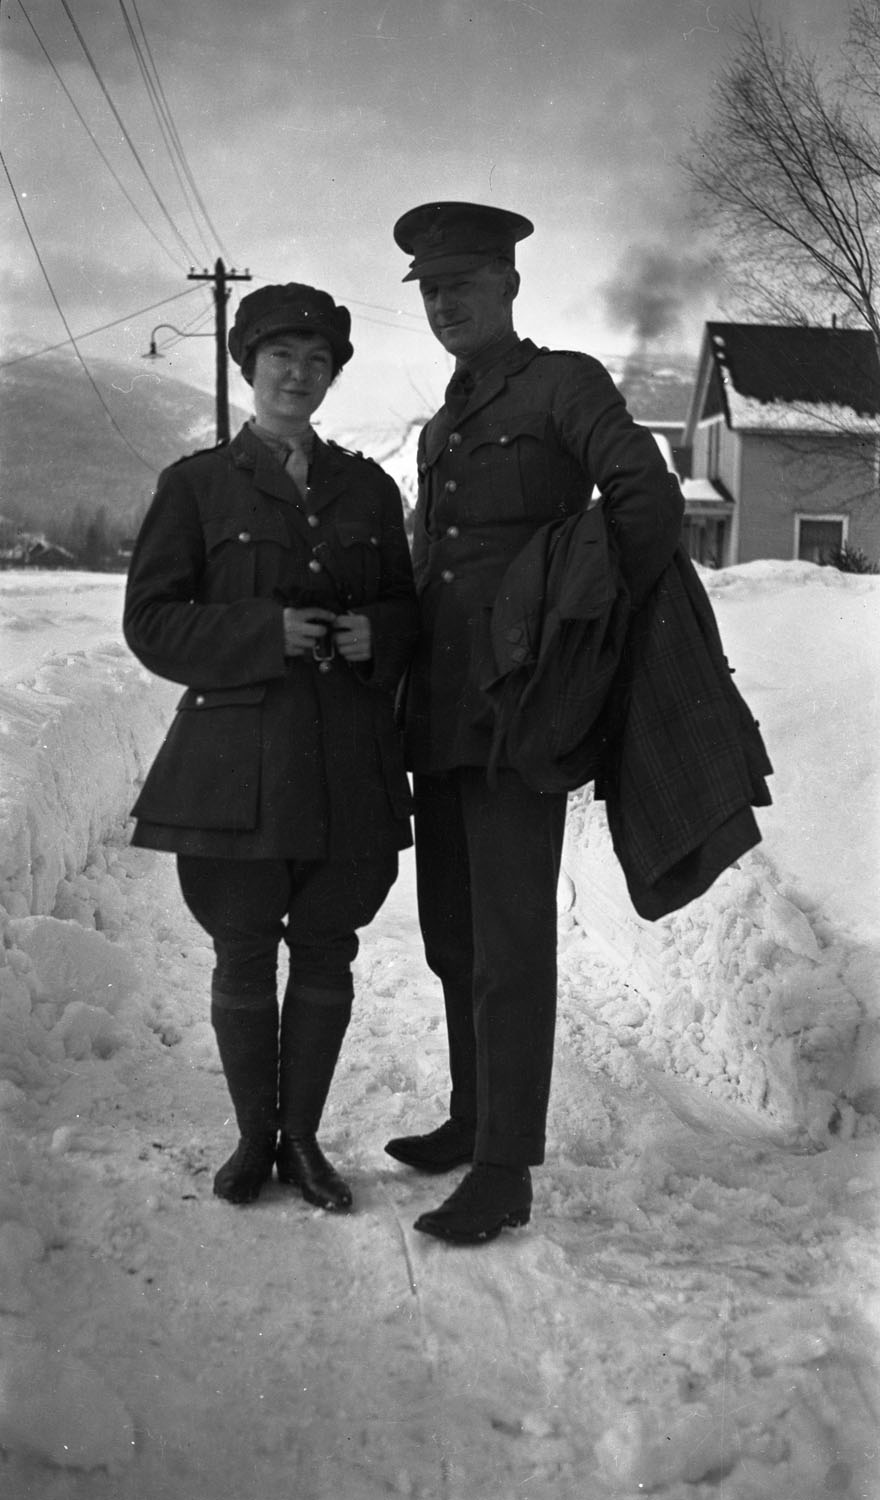 Unknown Man and Woman in Uniform [DN-635]